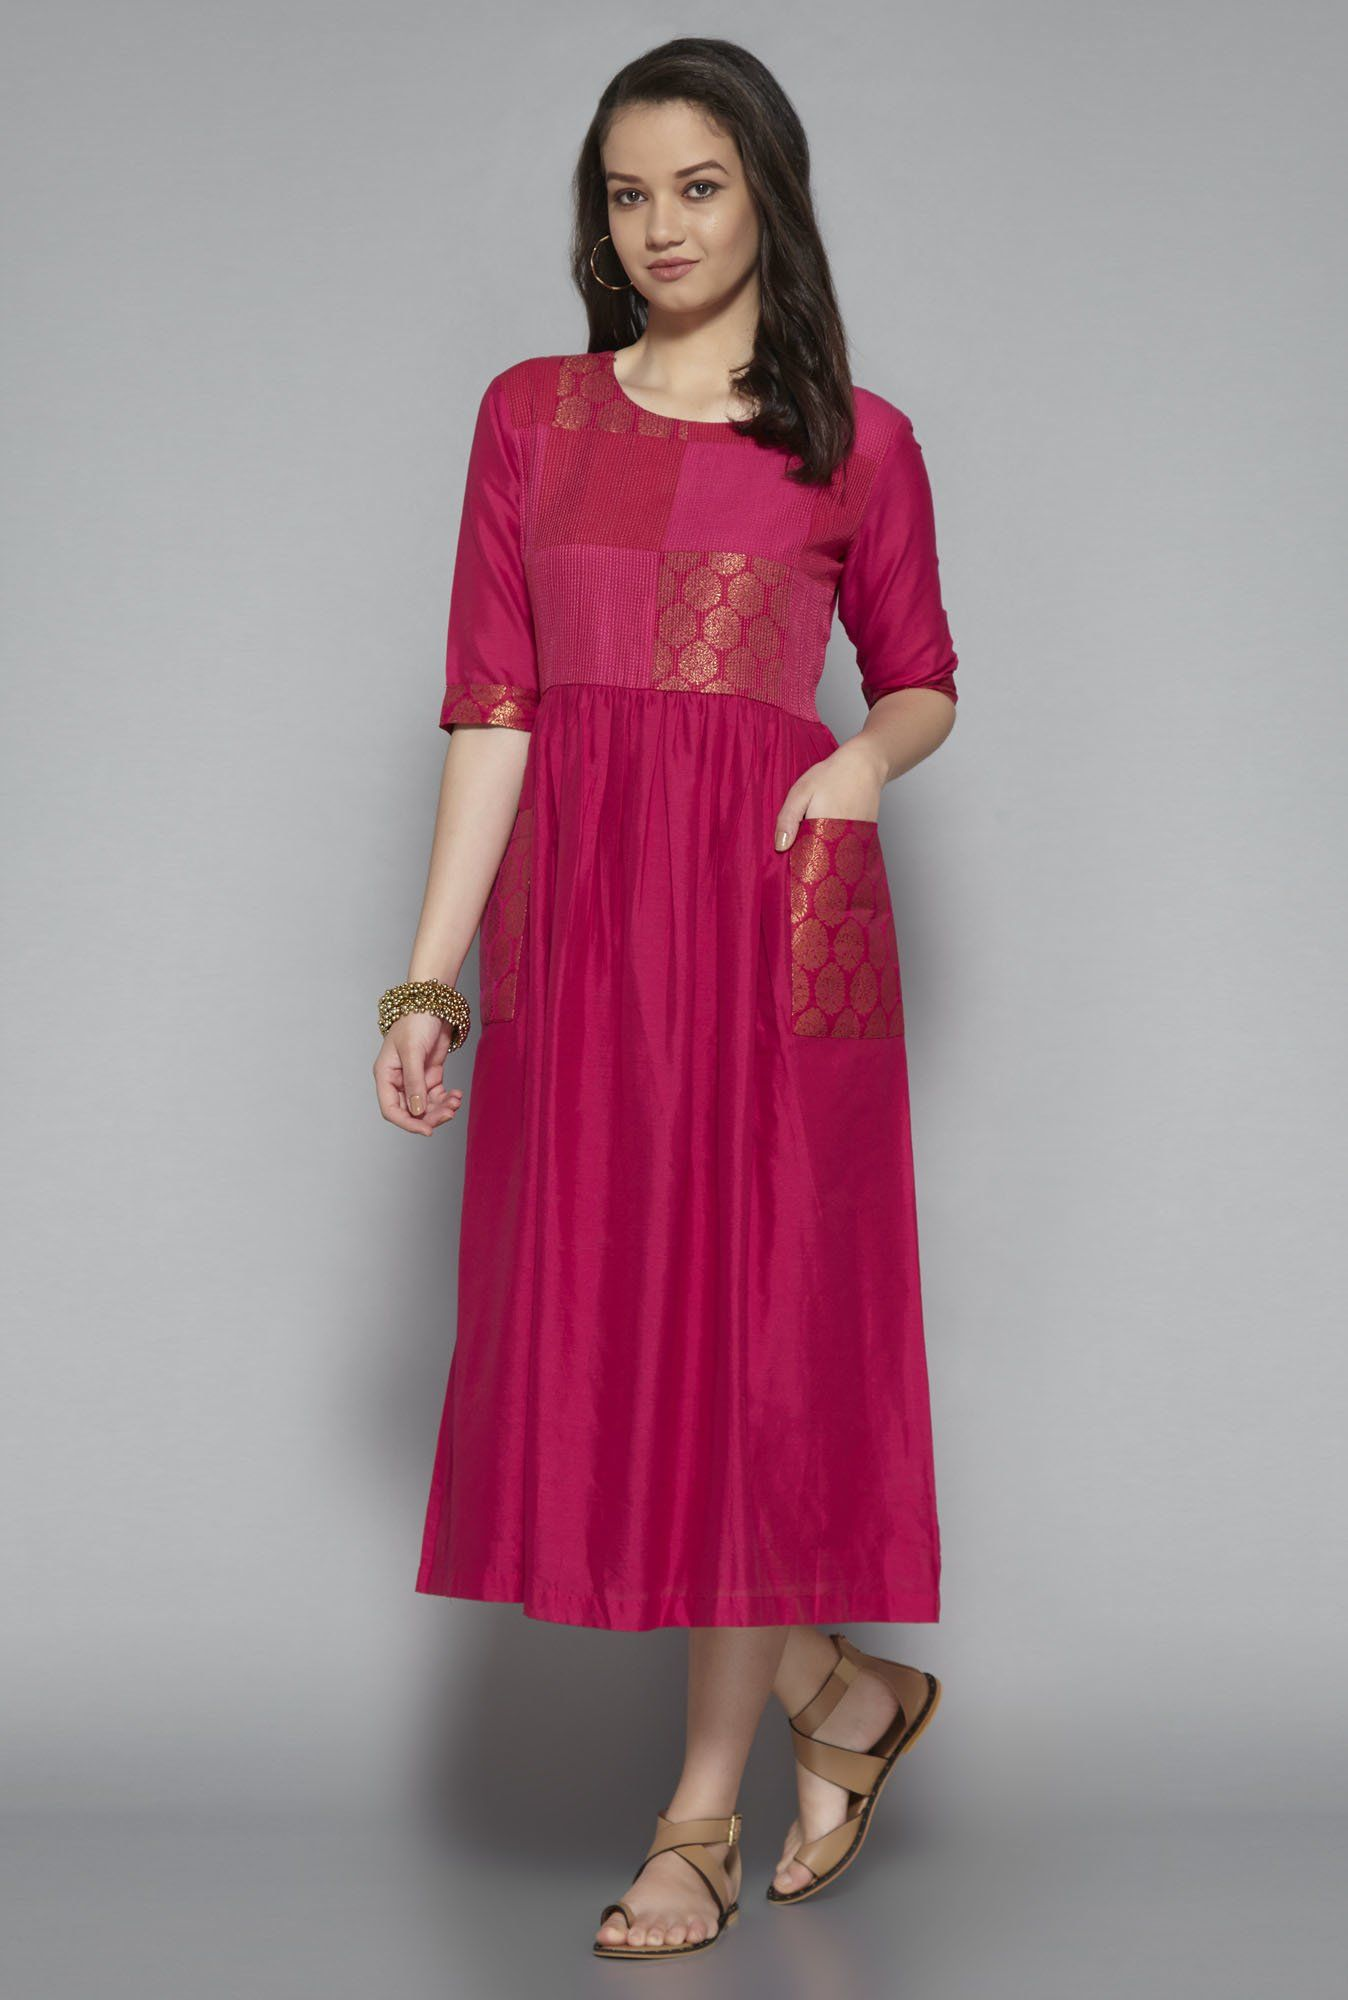 Bombay Paisley by Westside Pink Dress